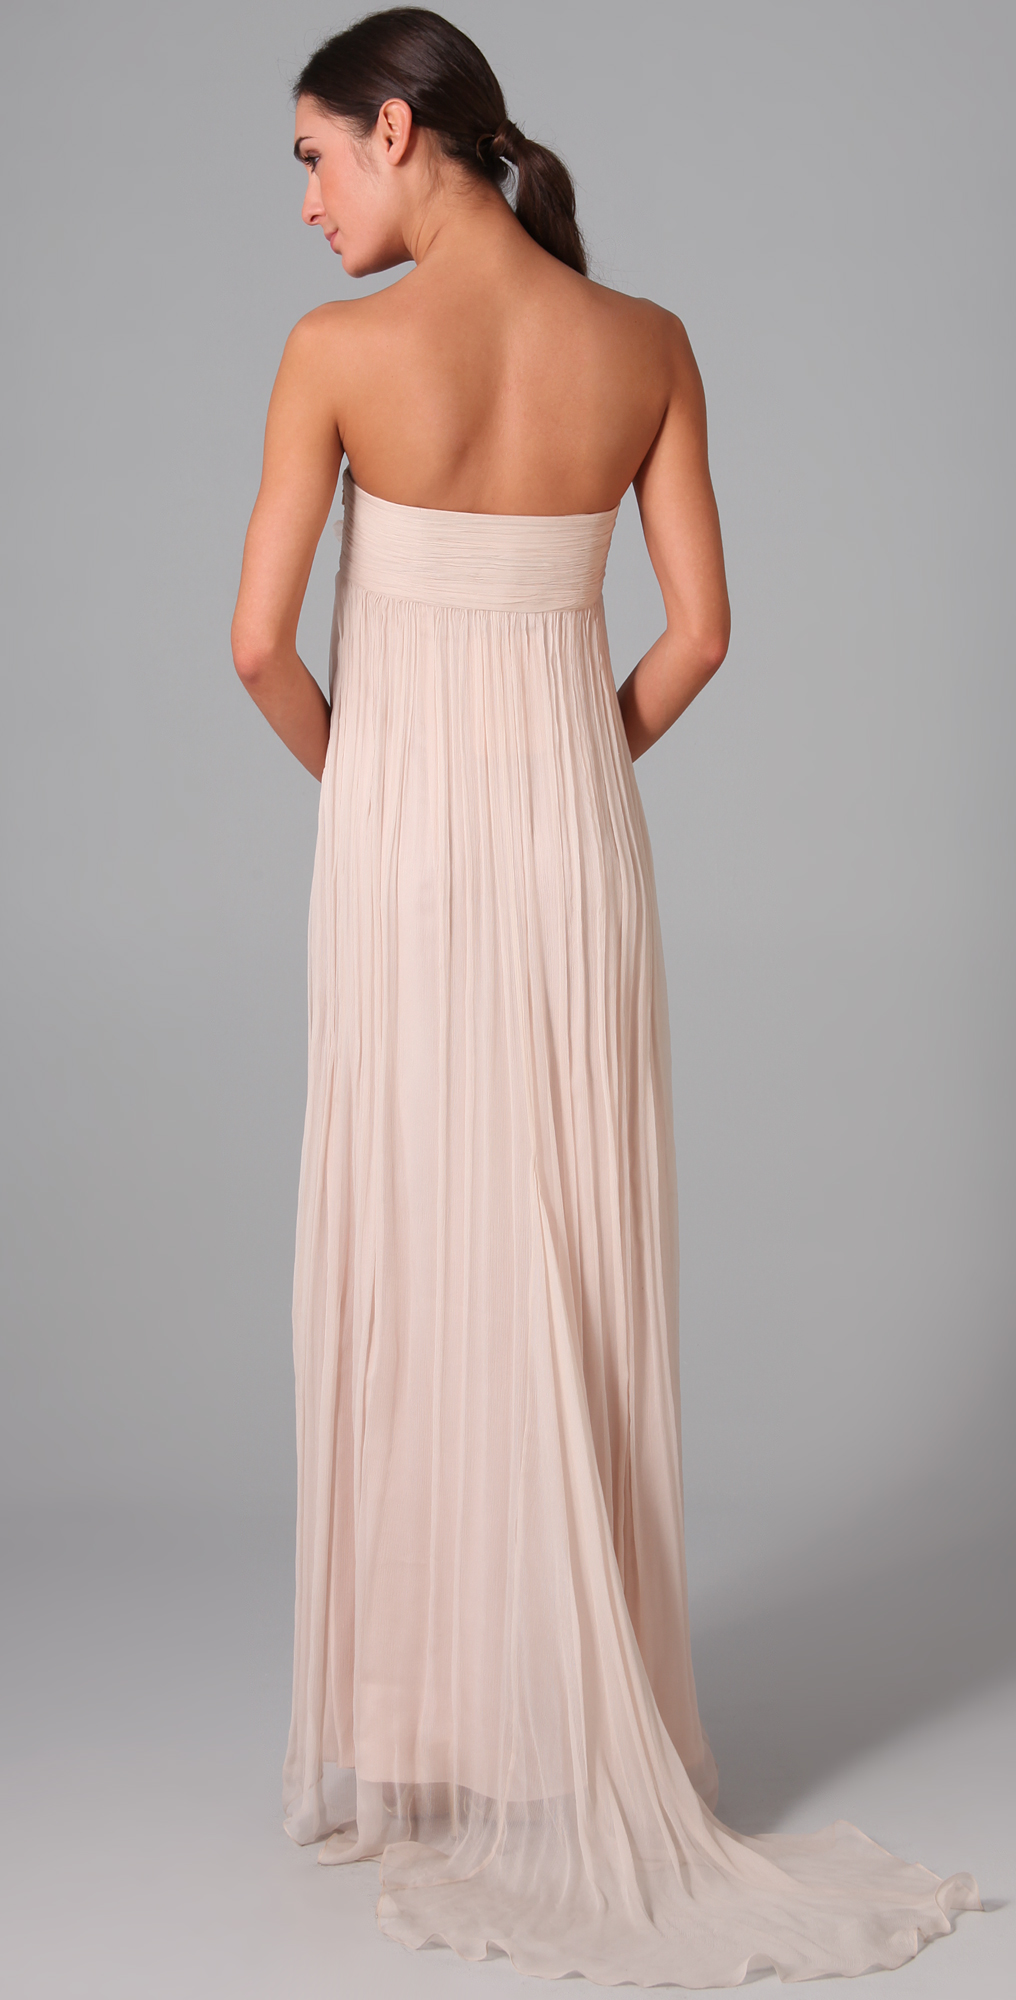 Ethereal by Leila Hafzi Mariam Gown | SHOPBOP